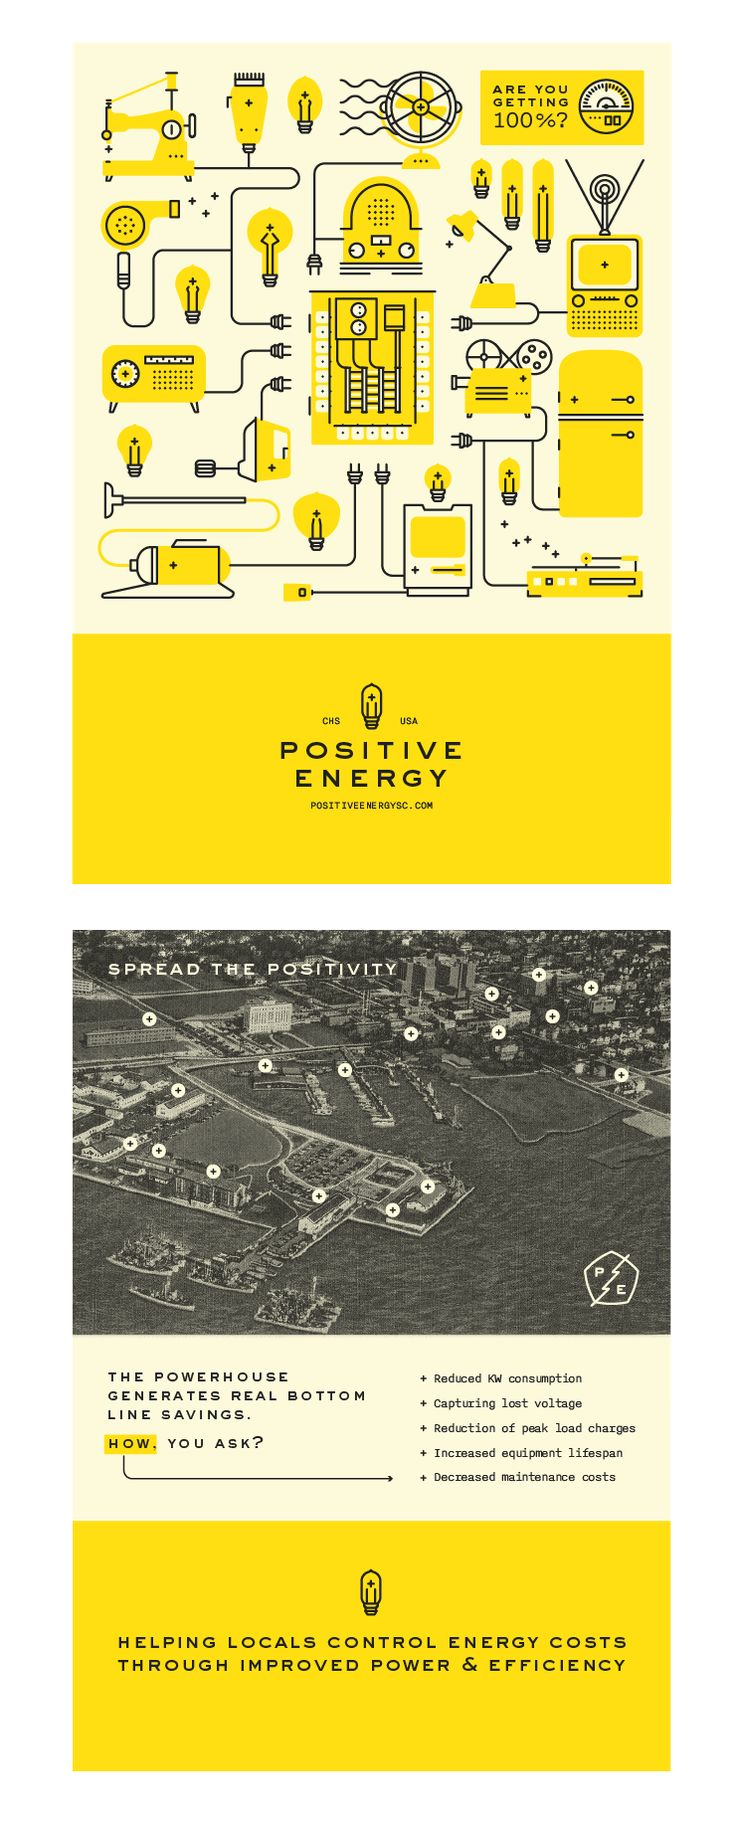 Positive Energy branding by Fuzzco - Brand Creation, Collateral, Icons, Illustration, Logo, Print, Responsive Web Design, Website